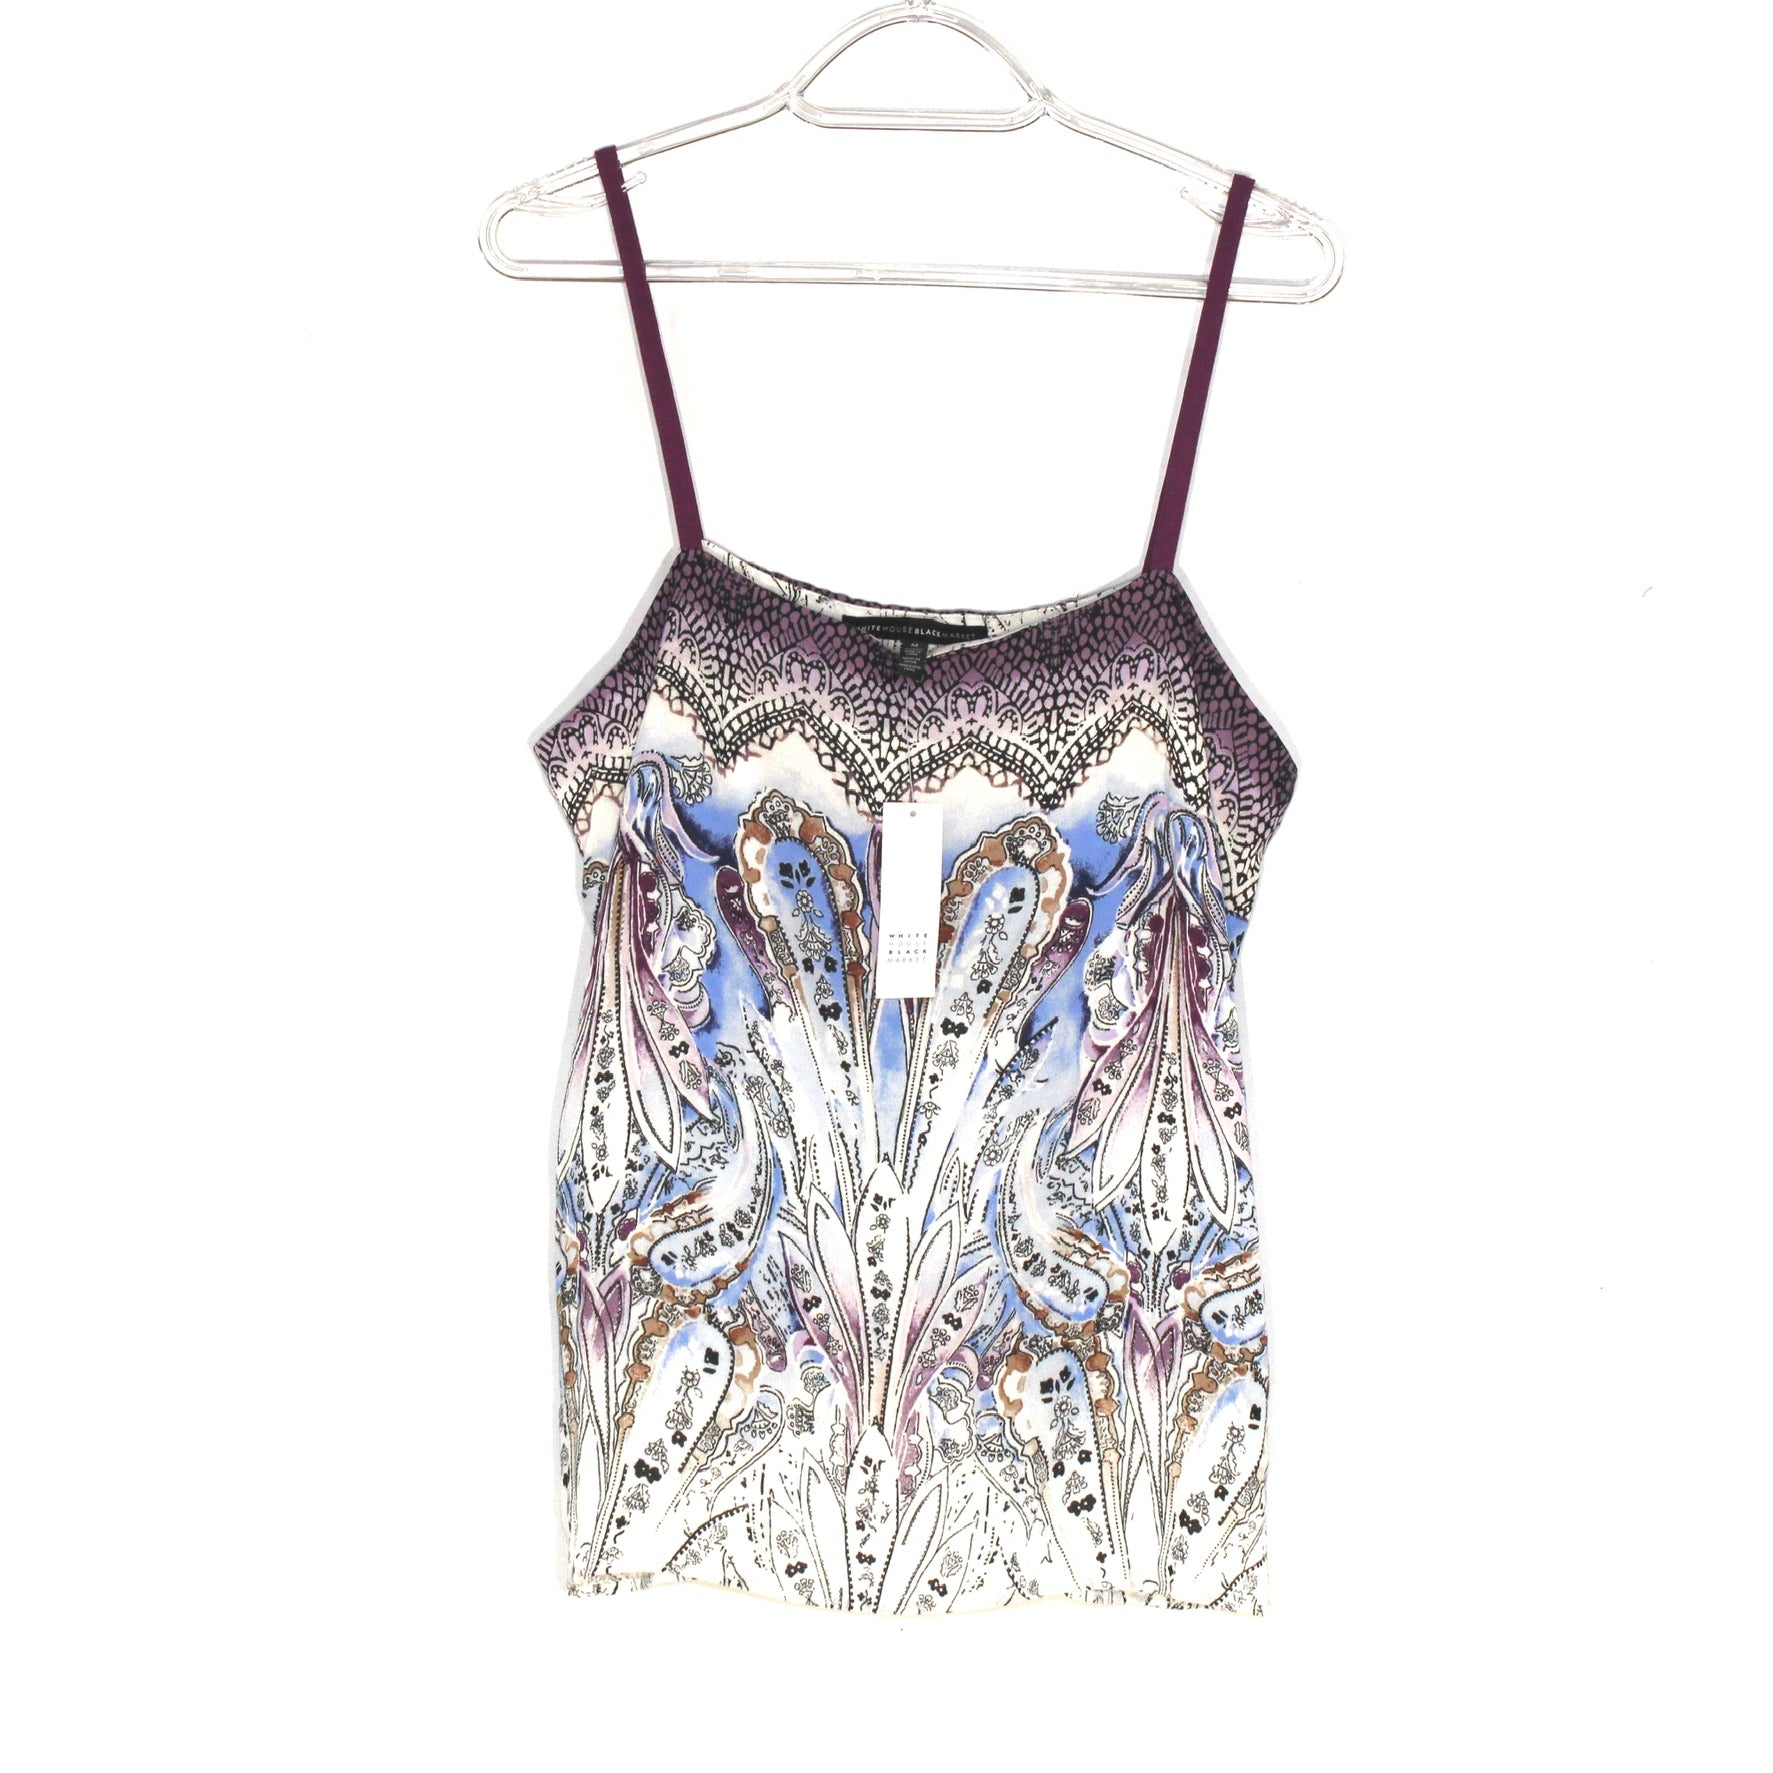 Primary Photo - BRAND: WHITE HOUSE BLACK MARKET <BR>STYLE: TOP SLEEVELESS <BR>COLOR: PAISLEY <BR>SIZE: M <BR>SKU: 262-26275-59150